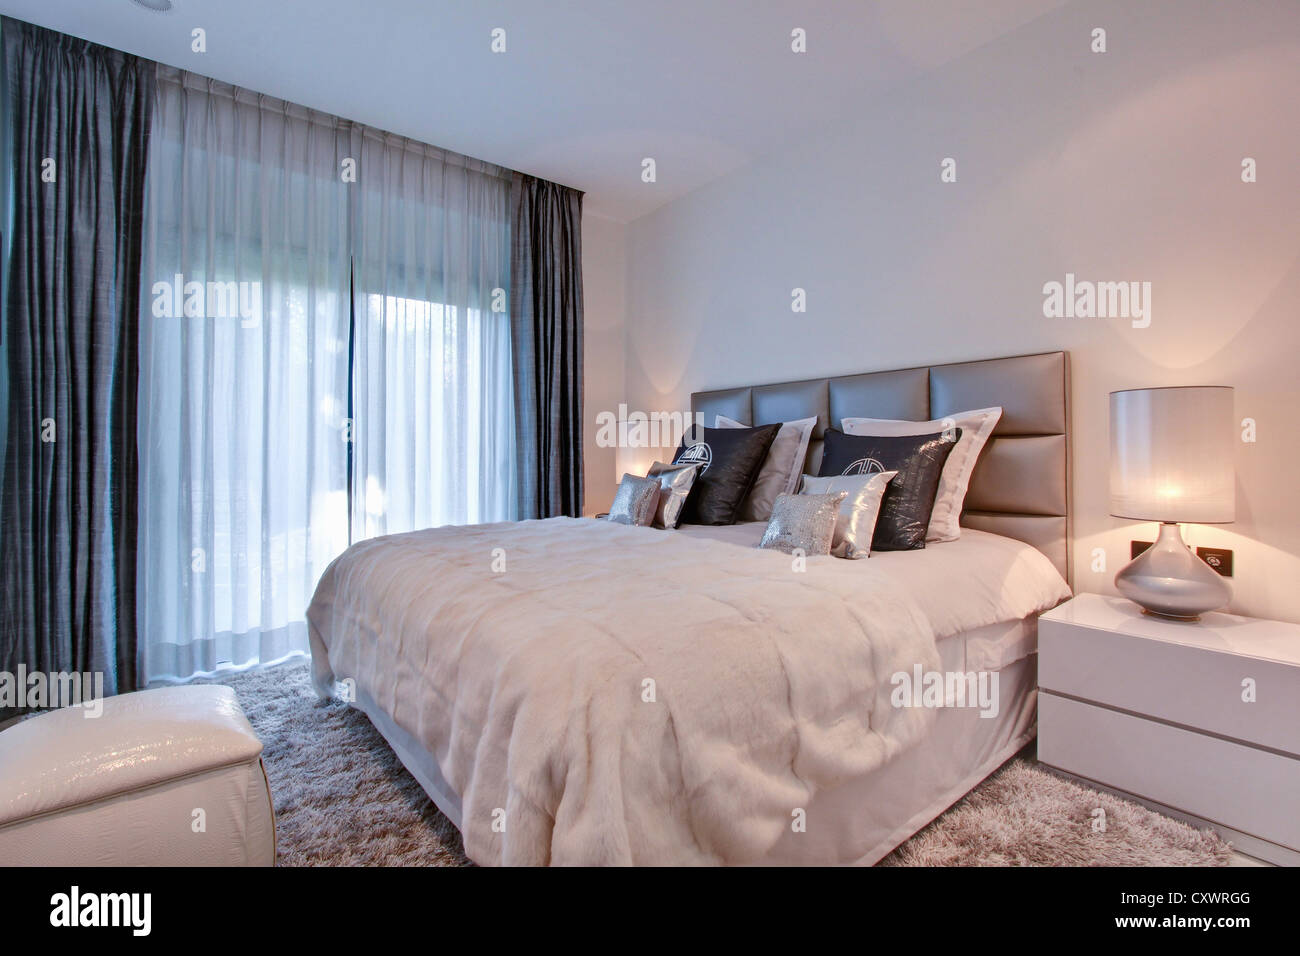 gardinen im schlafzimmer stockfoto bild 50969088 alamy. Black Bedroom Furniture Sets. Home Design Ideas